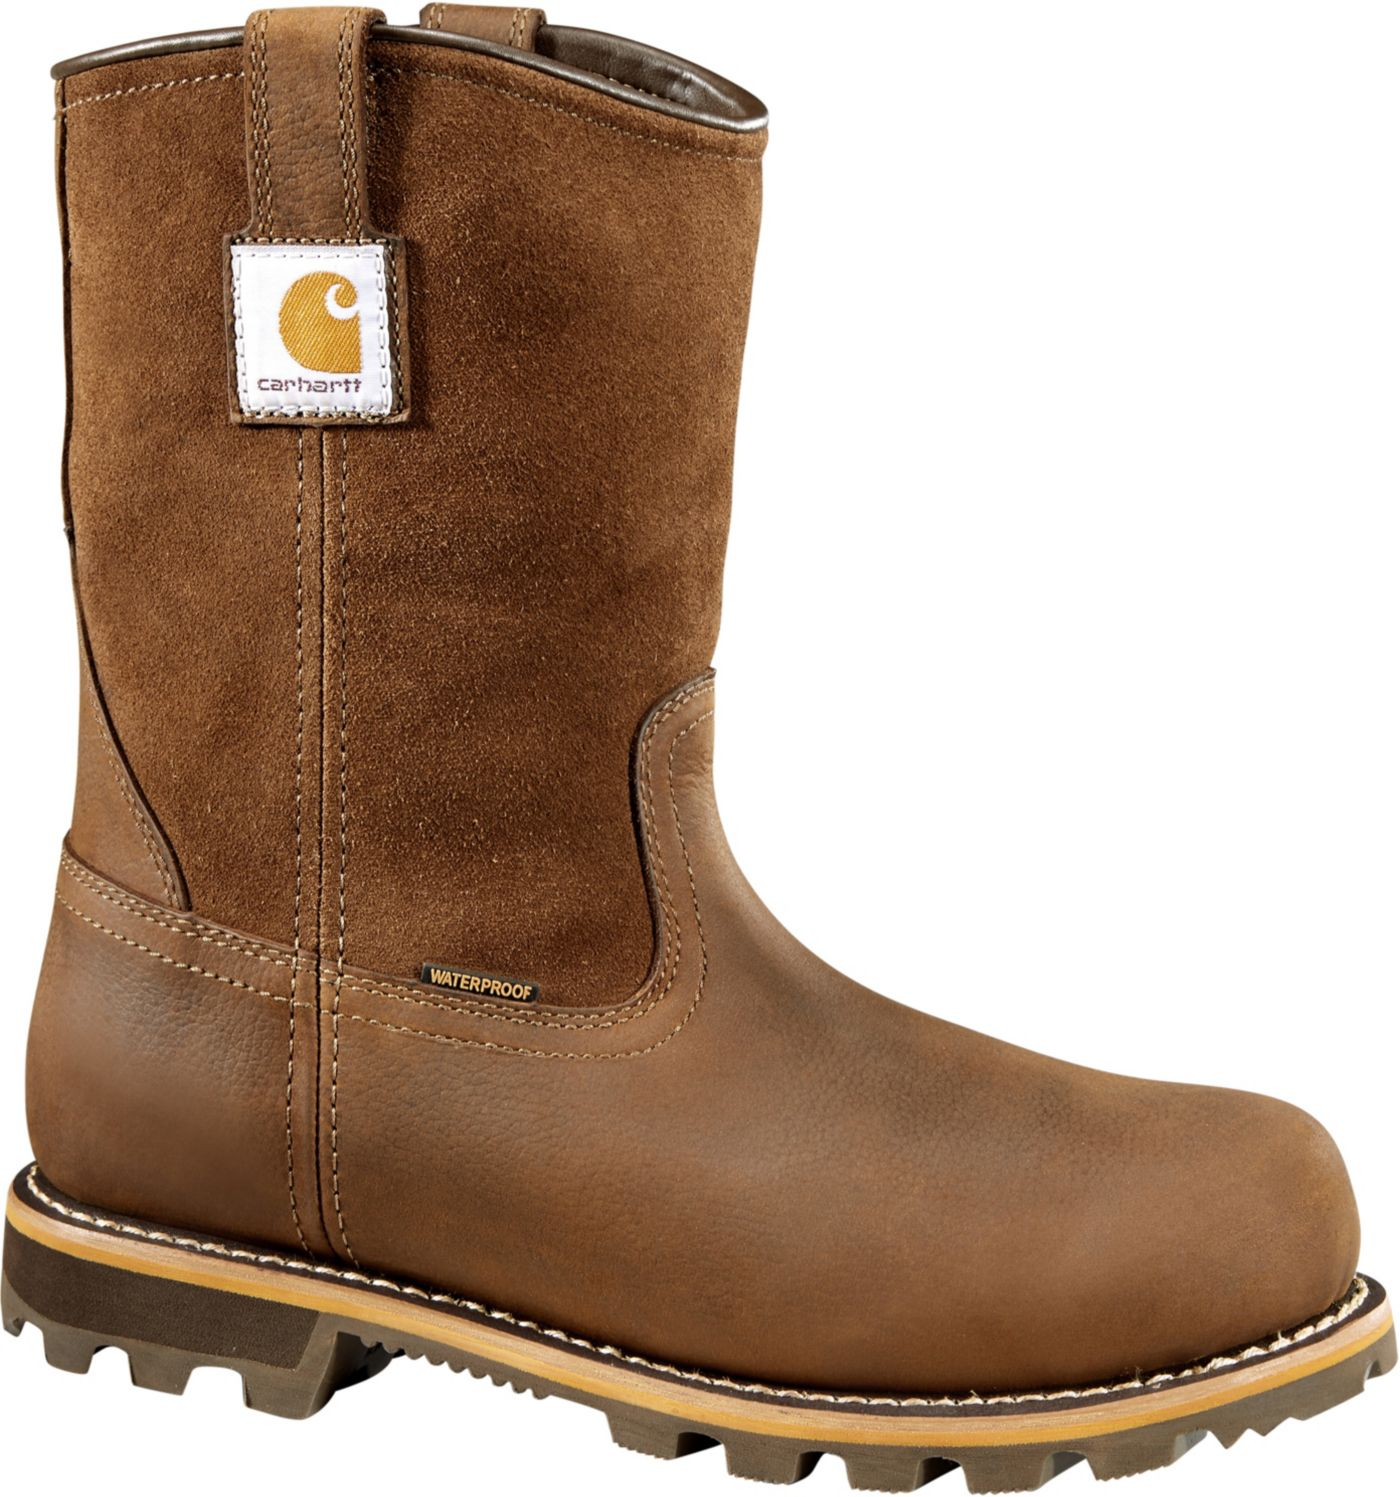 Carhartt Men's Traditional 10'' Pull On Waterproof Carbon Nano Toe Work Boots